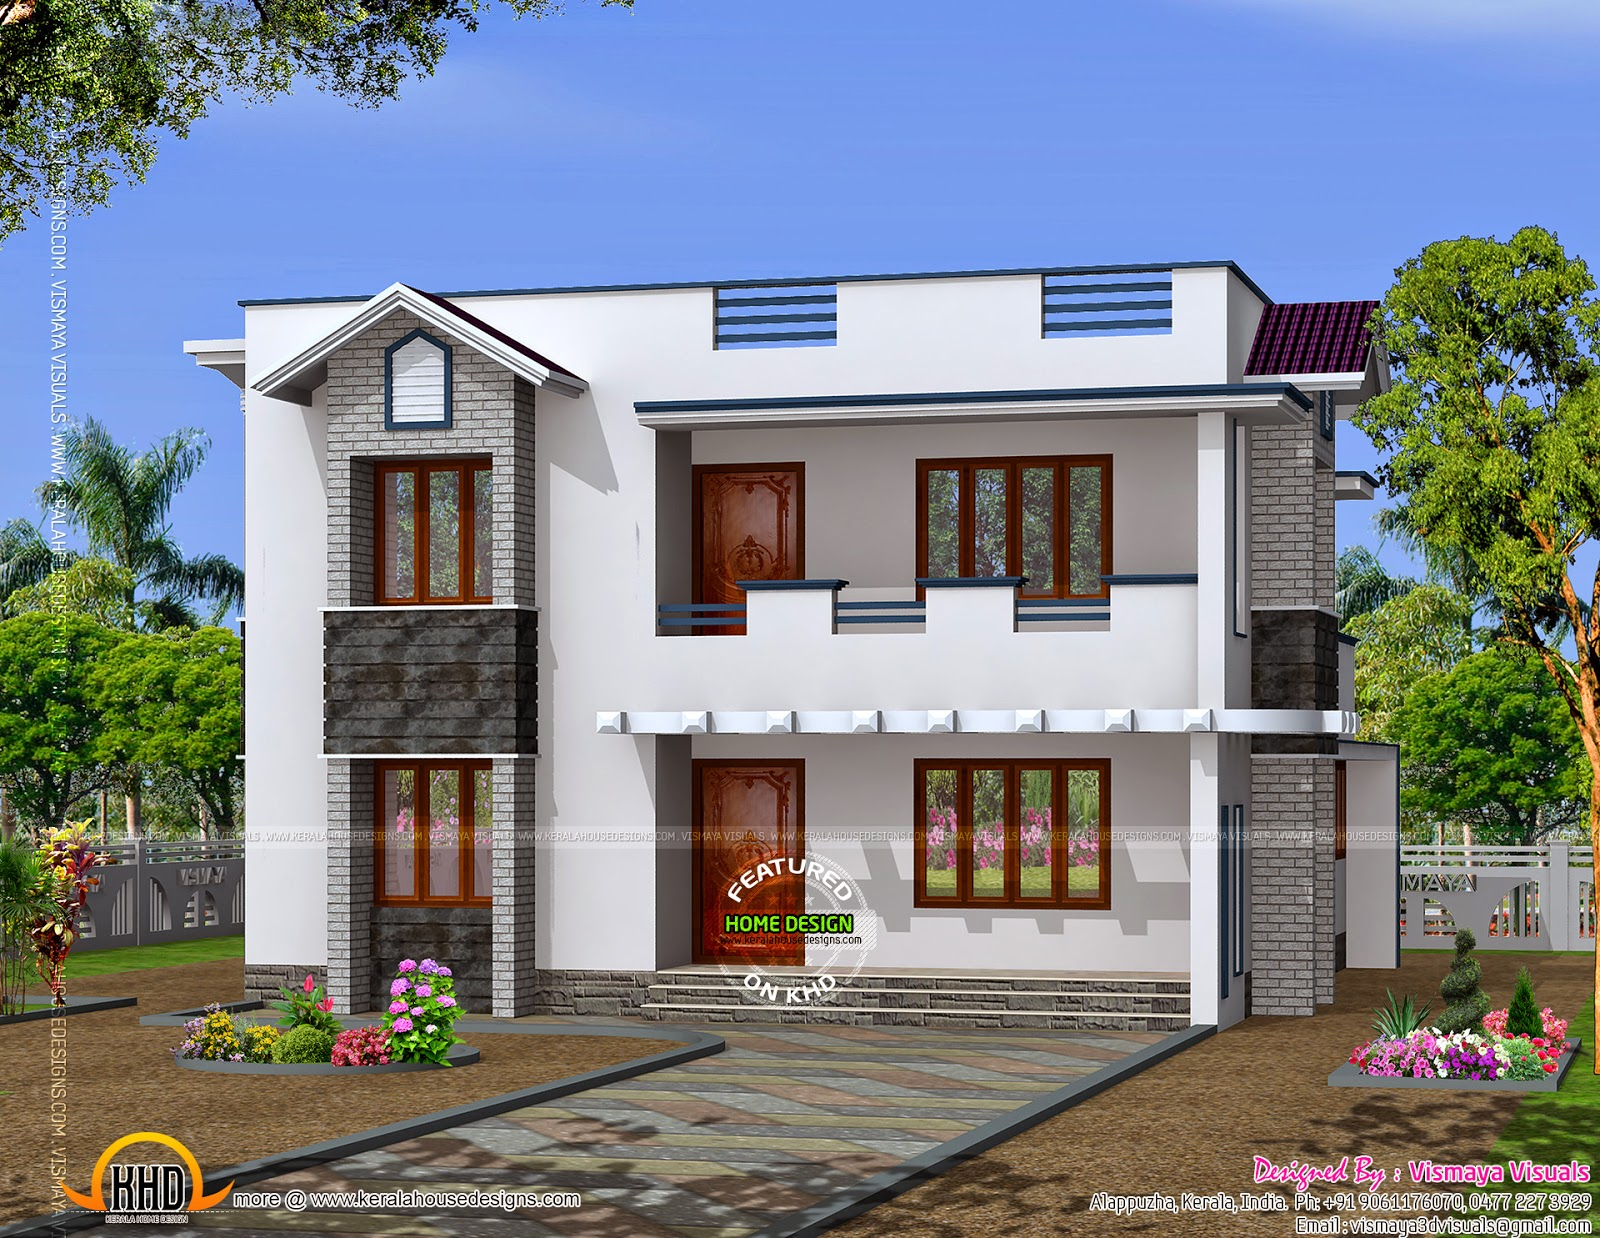 Simple design home kerala home design and floor plans for Simple house designs